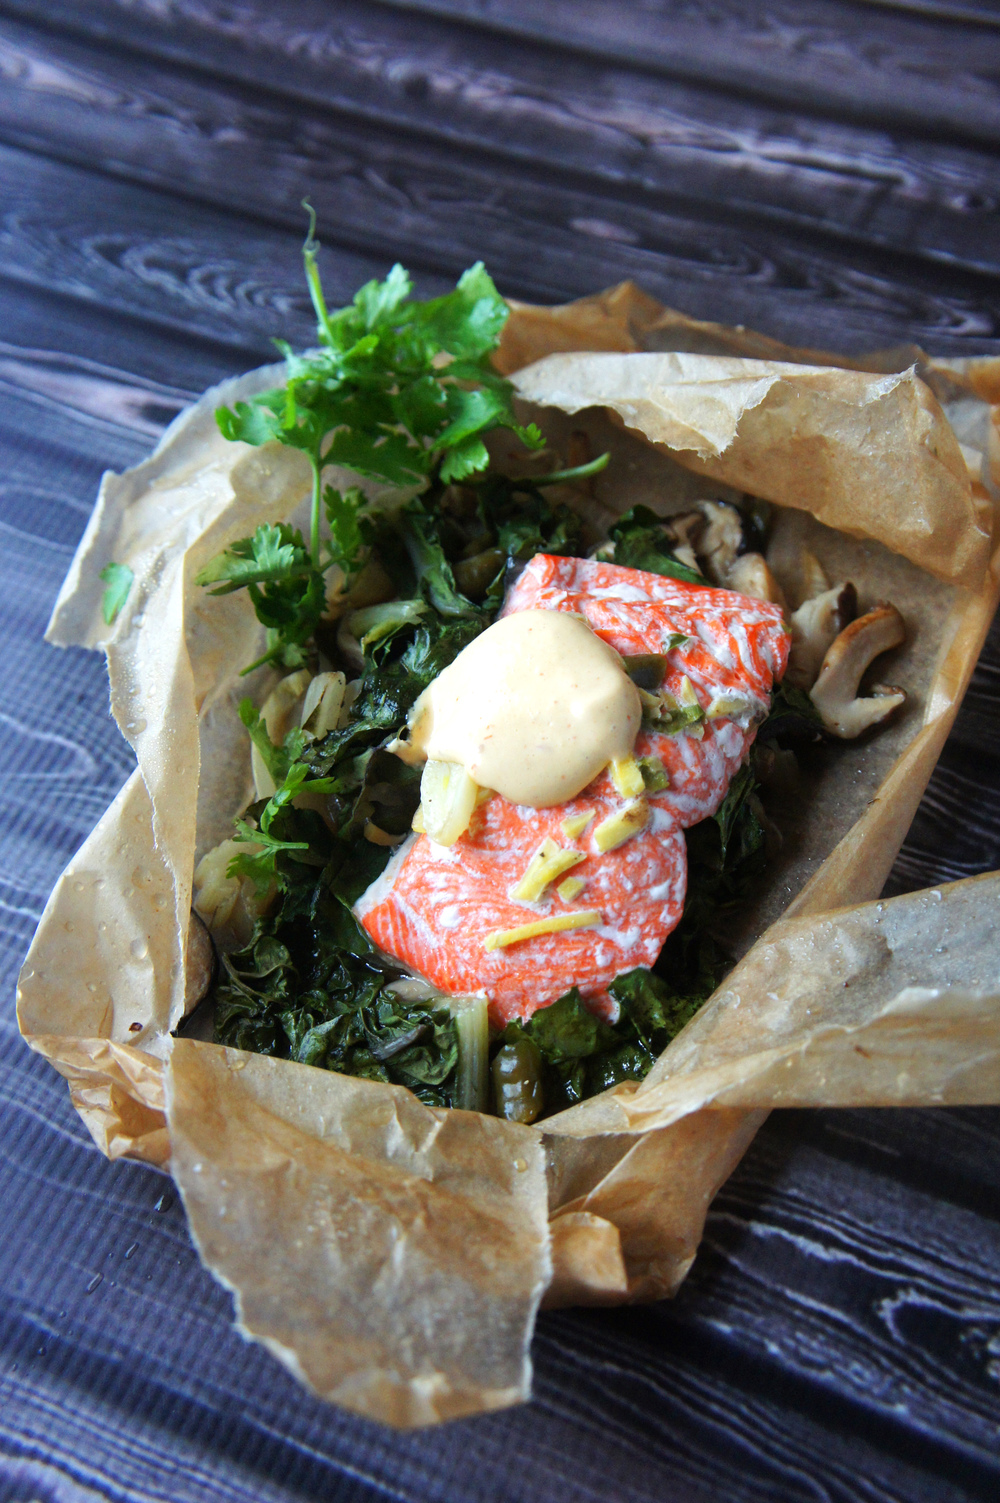 Salmon and Shiitake Mushrooms with Greens in Parchment, topped with Sriracha Aioli. A paleo-friendly dish